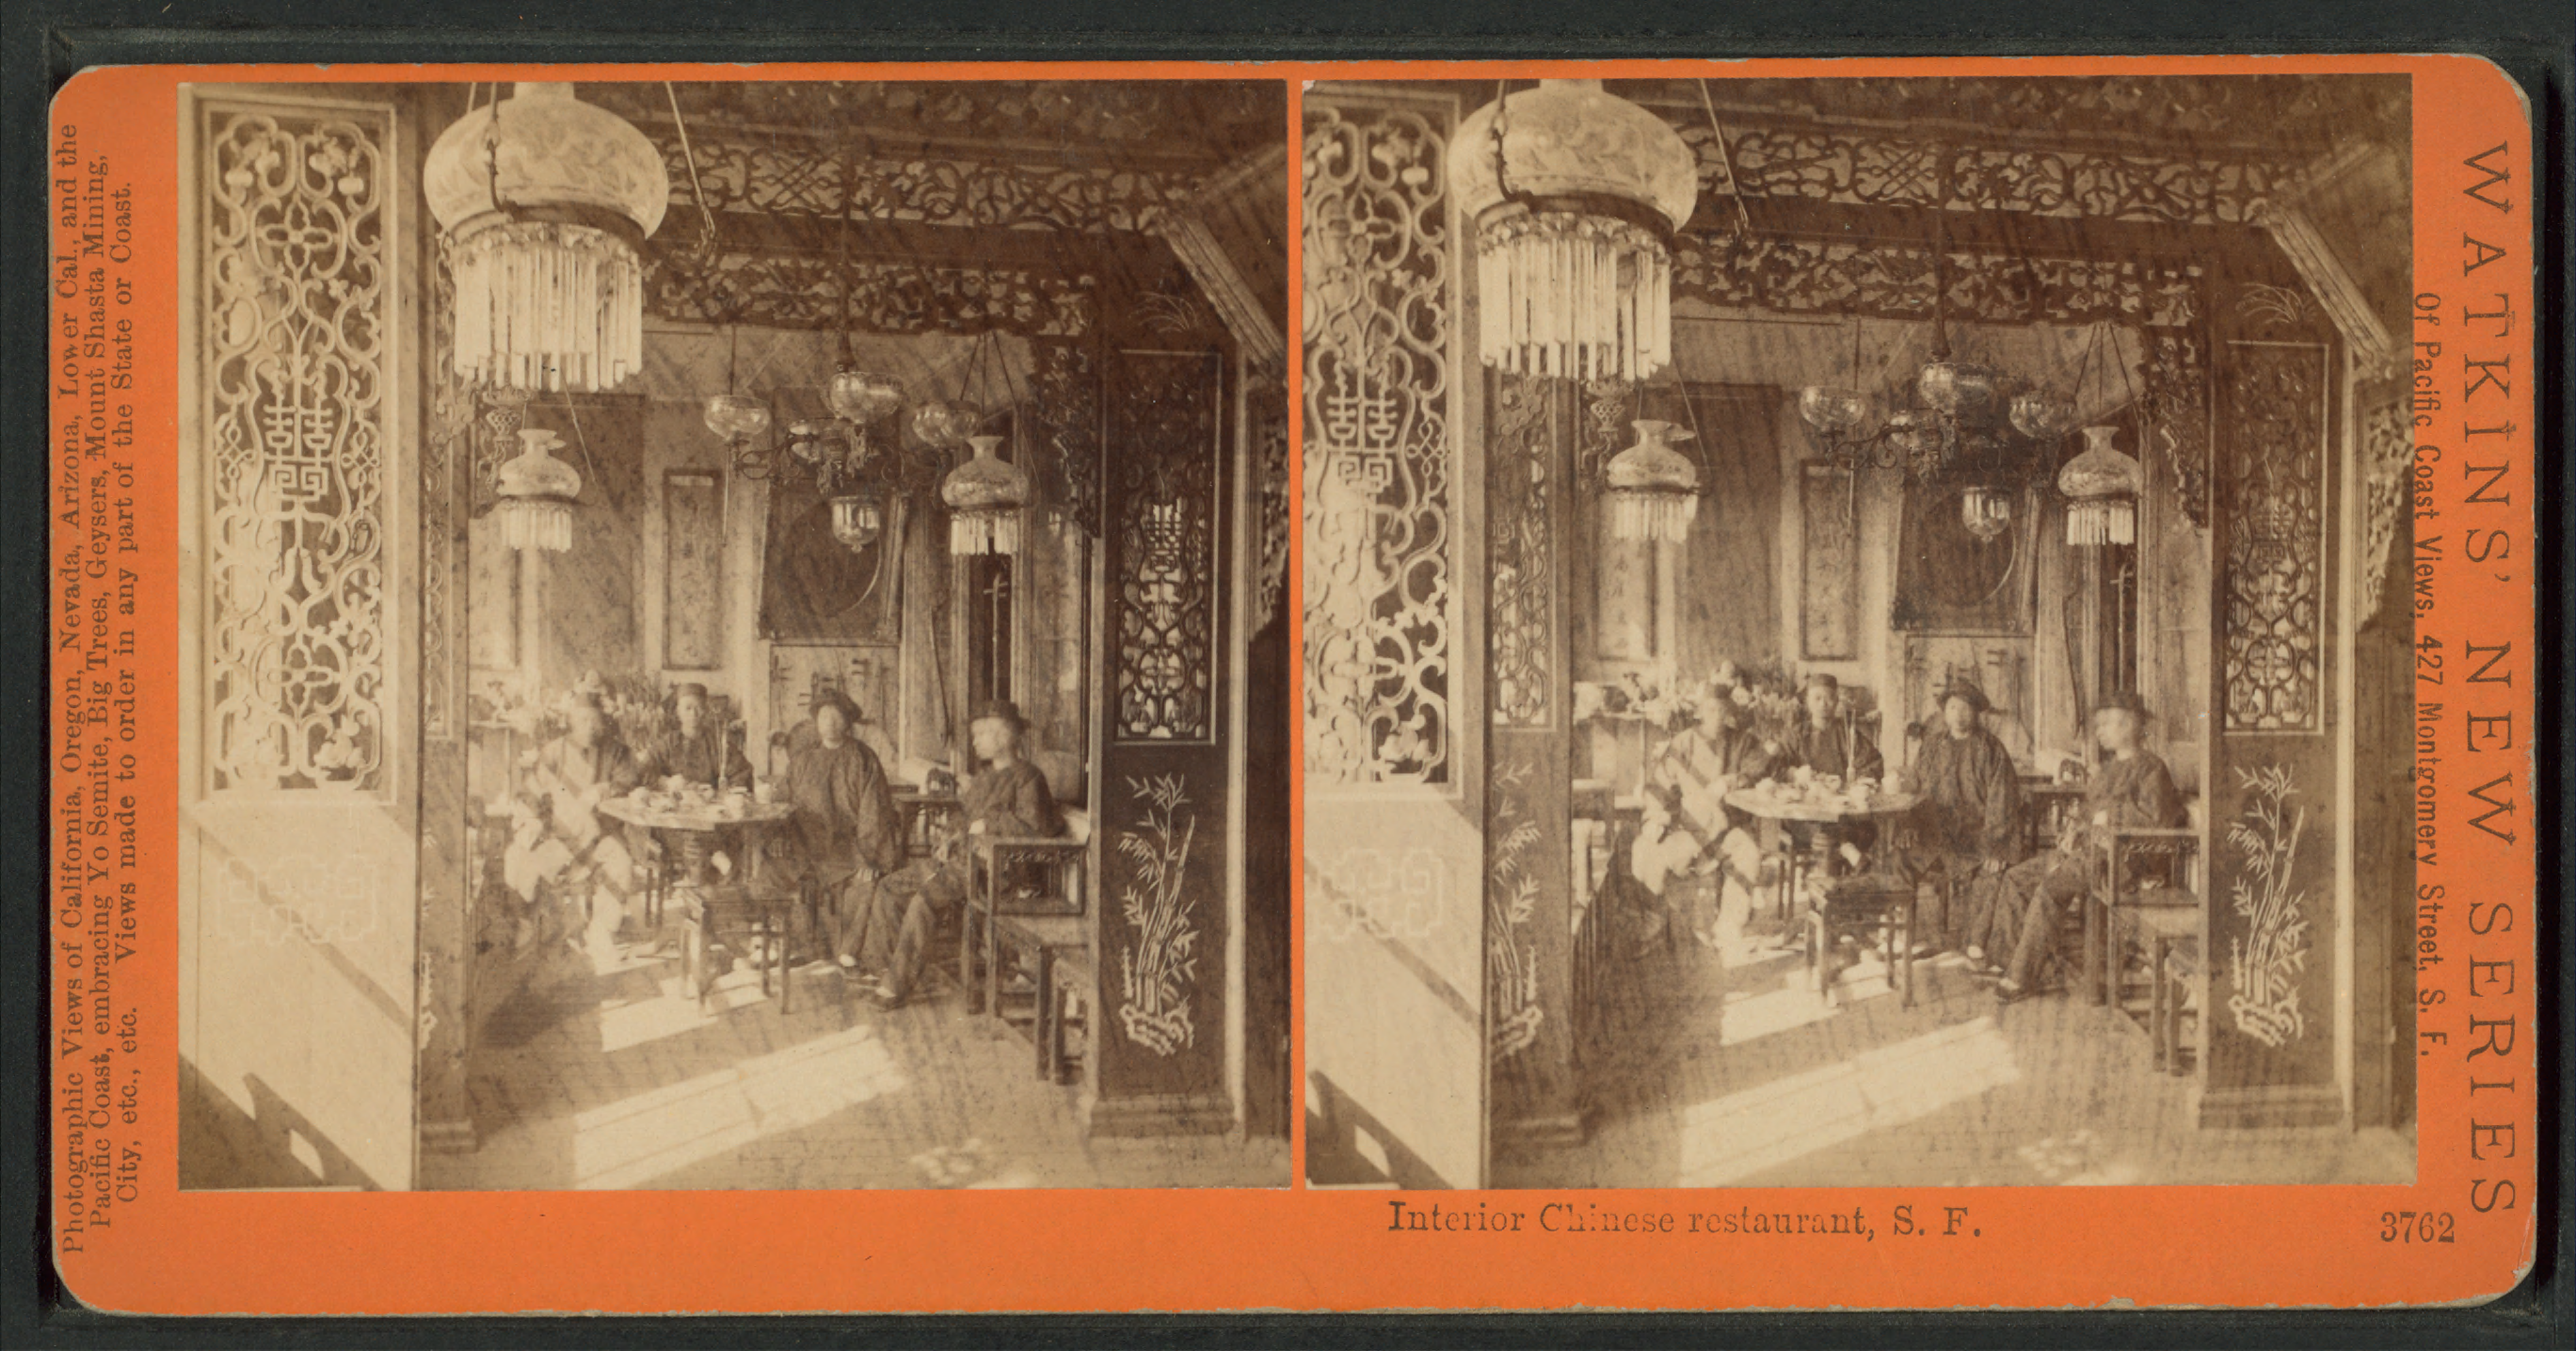 Interior,_Chinese_Restaurant,_S.F,_from_Robert_N._Dennis_collection_of_stereoscopic_views